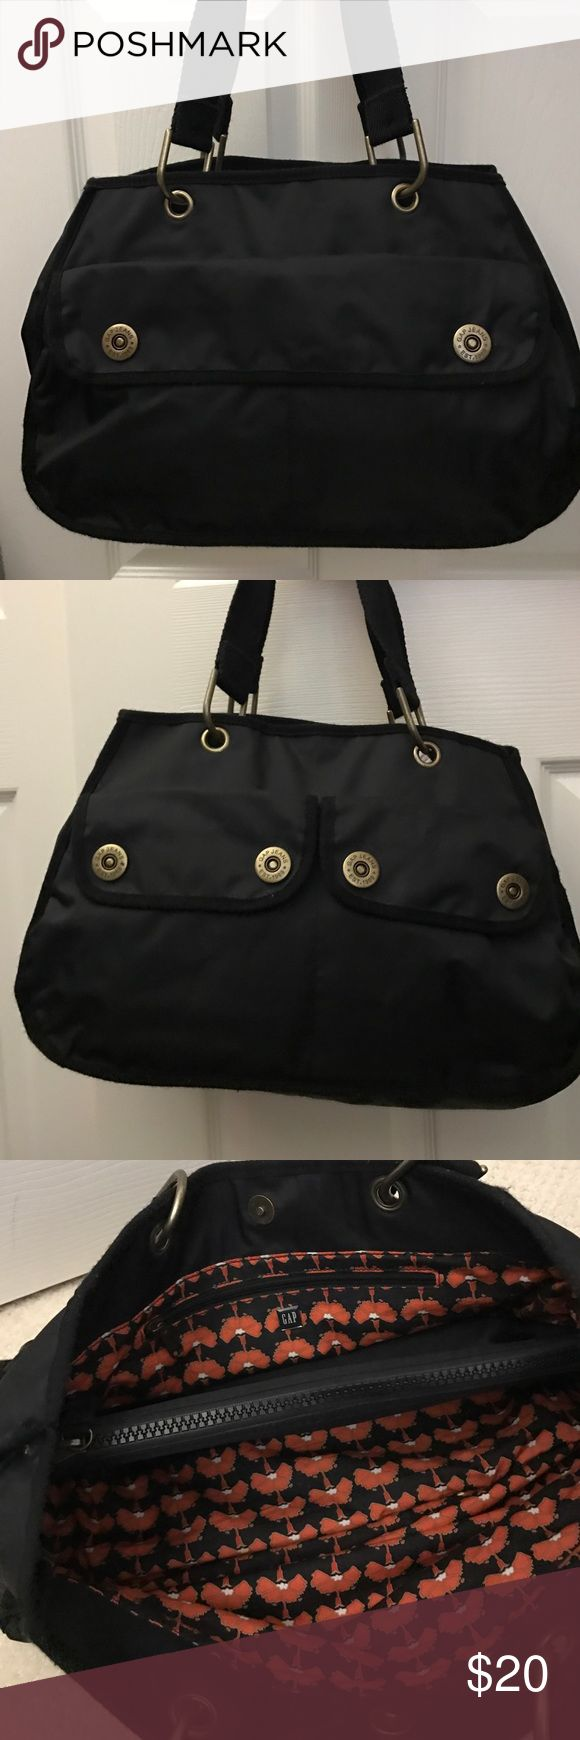 Gap VERY NICE nylon many pockets Clean inside and outside. Very good condition GAP Bags Shoulder Bags